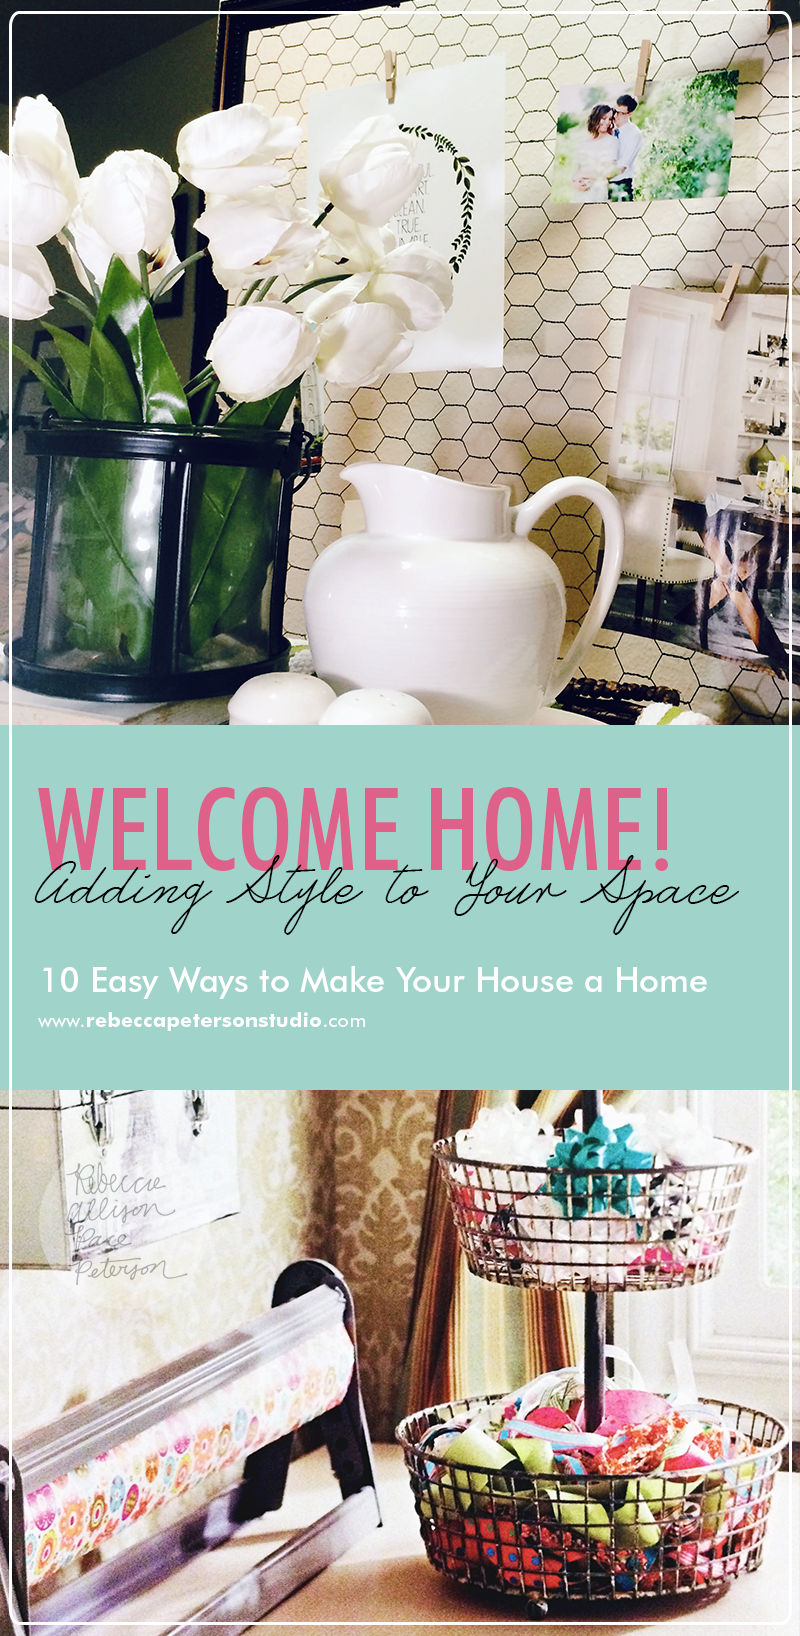 Decorating can be fun! 10 easy (and FREE) tips to bring more life to your home! www.rebeccapetersonstudio.com